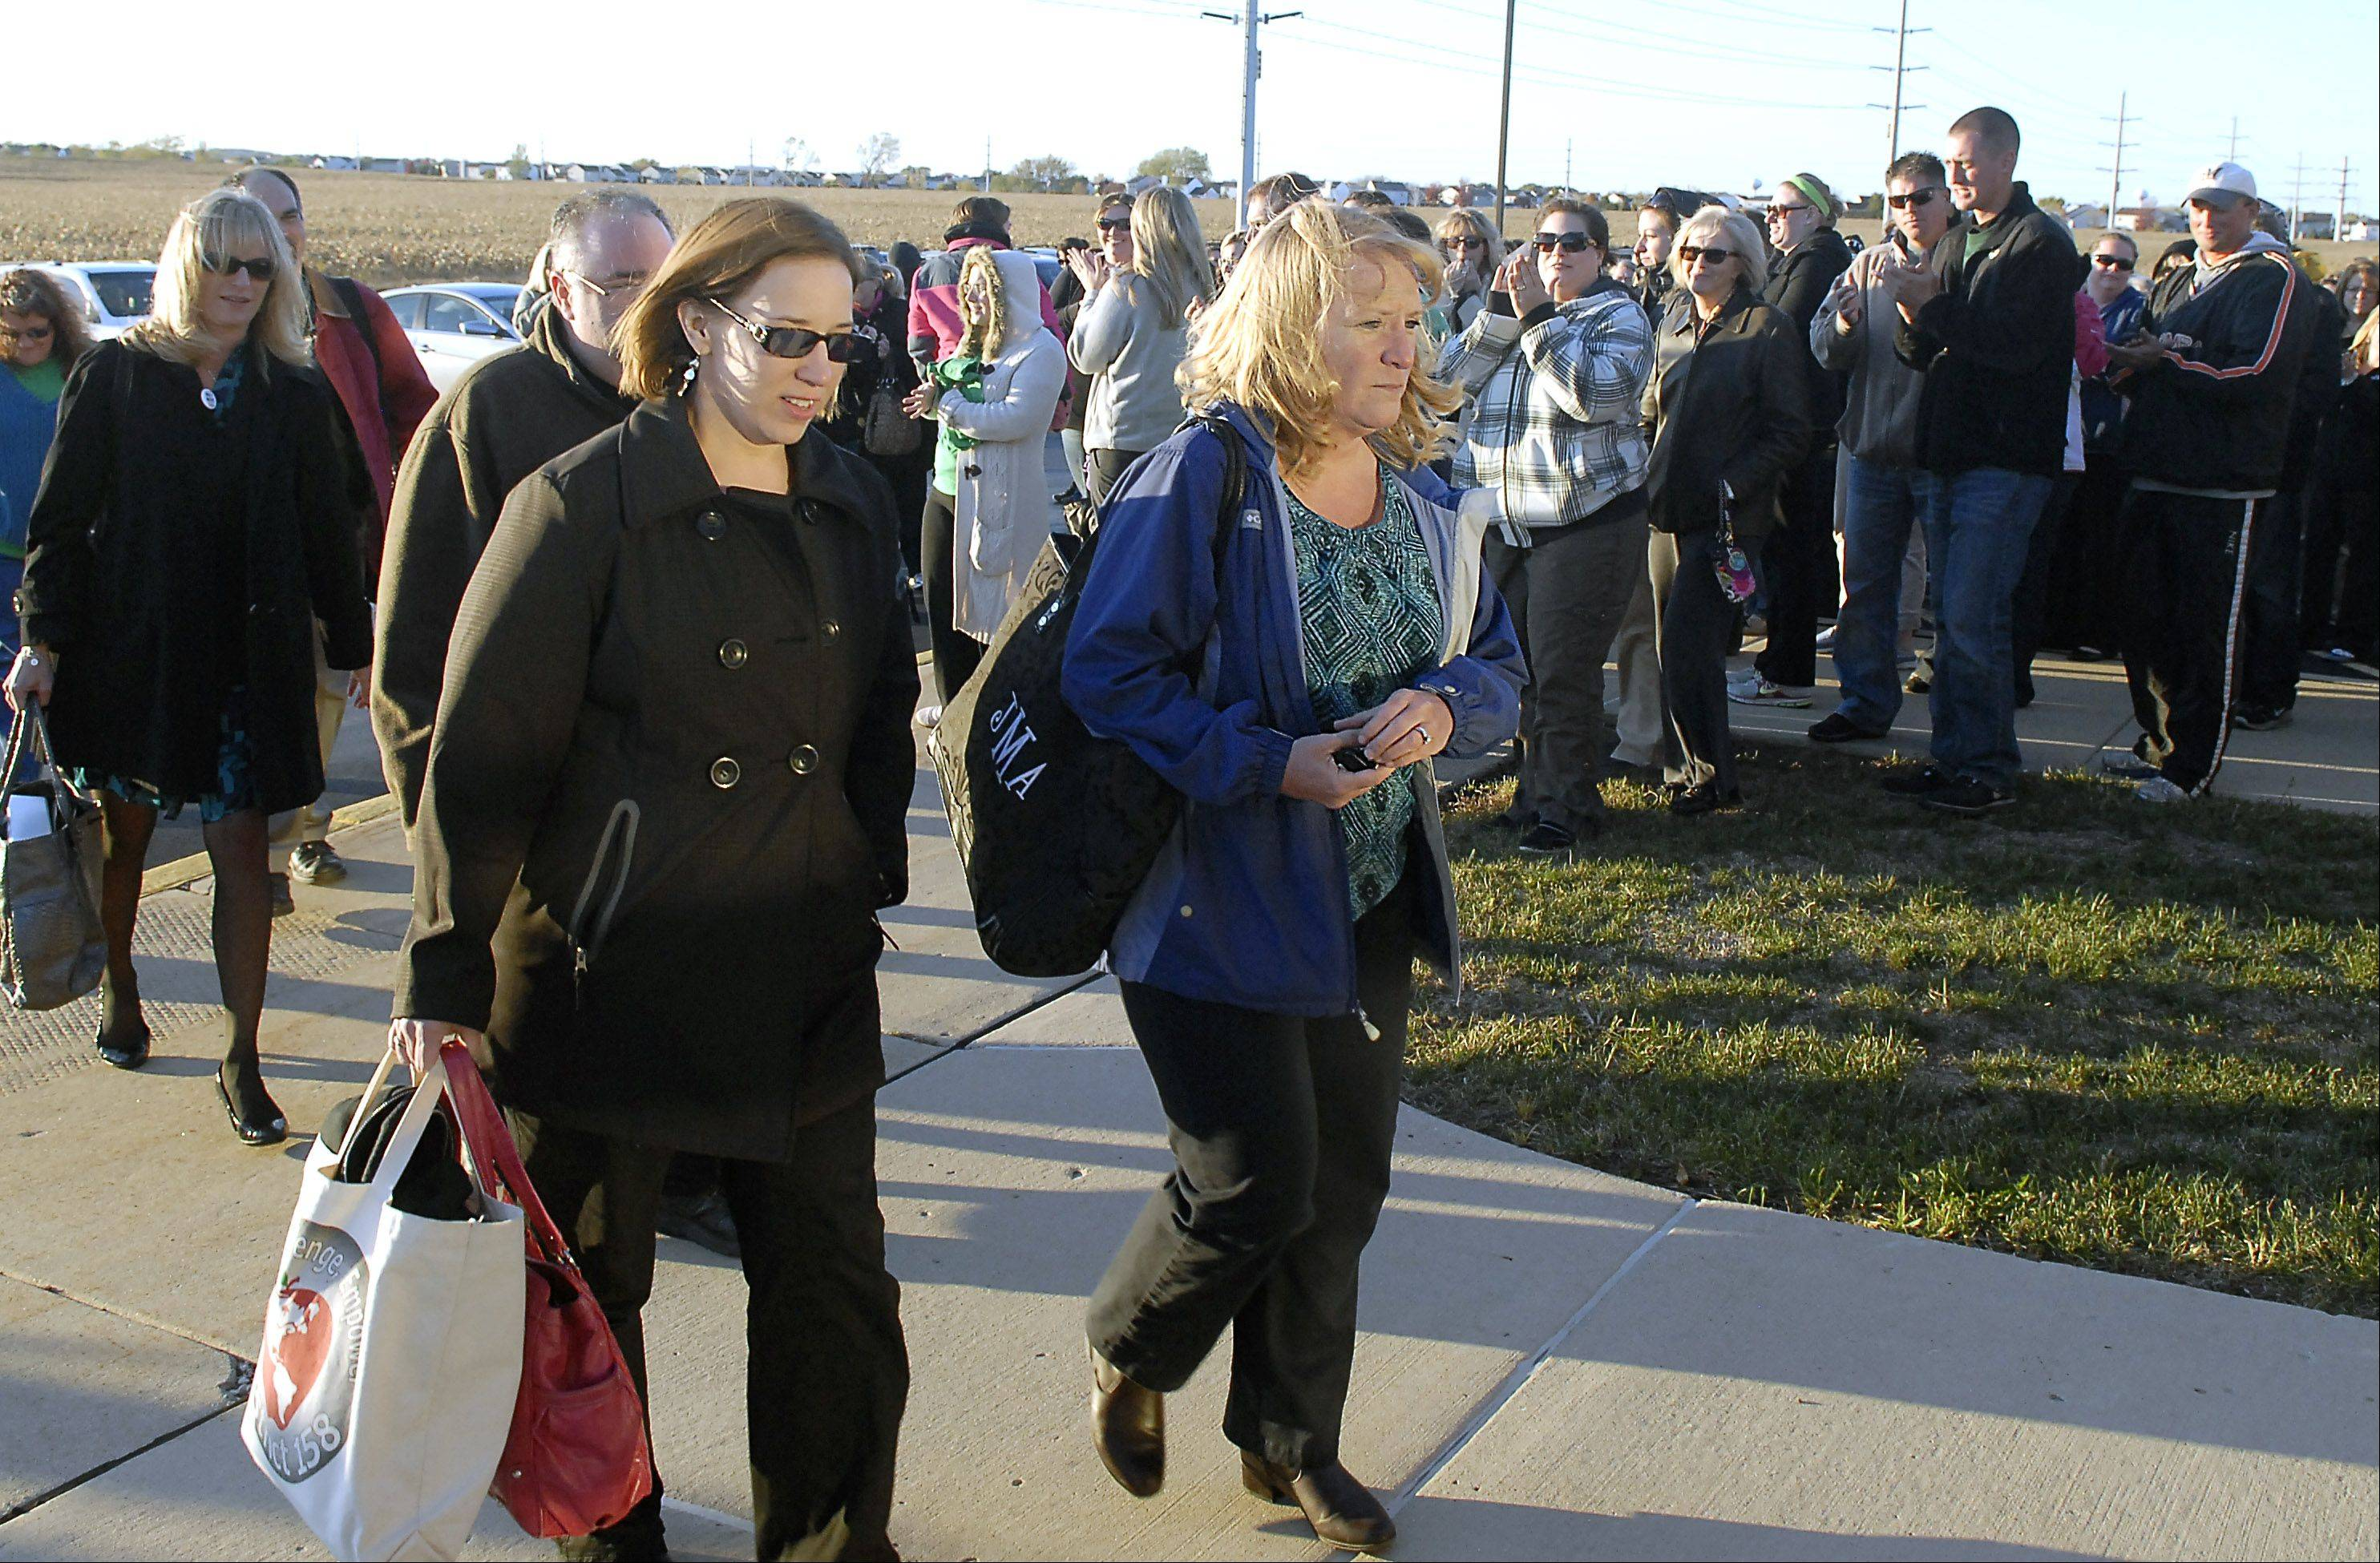 Huntley Education Association co-presidents Chris Laird, left, and Julie McLaughlin are applauded as they and other union representatives walk into Huntley Unit District 158 headquarters in Algonquin on Oct. 10 -- the last time the two sides met before hammering out a tentative contract Tuesday night.